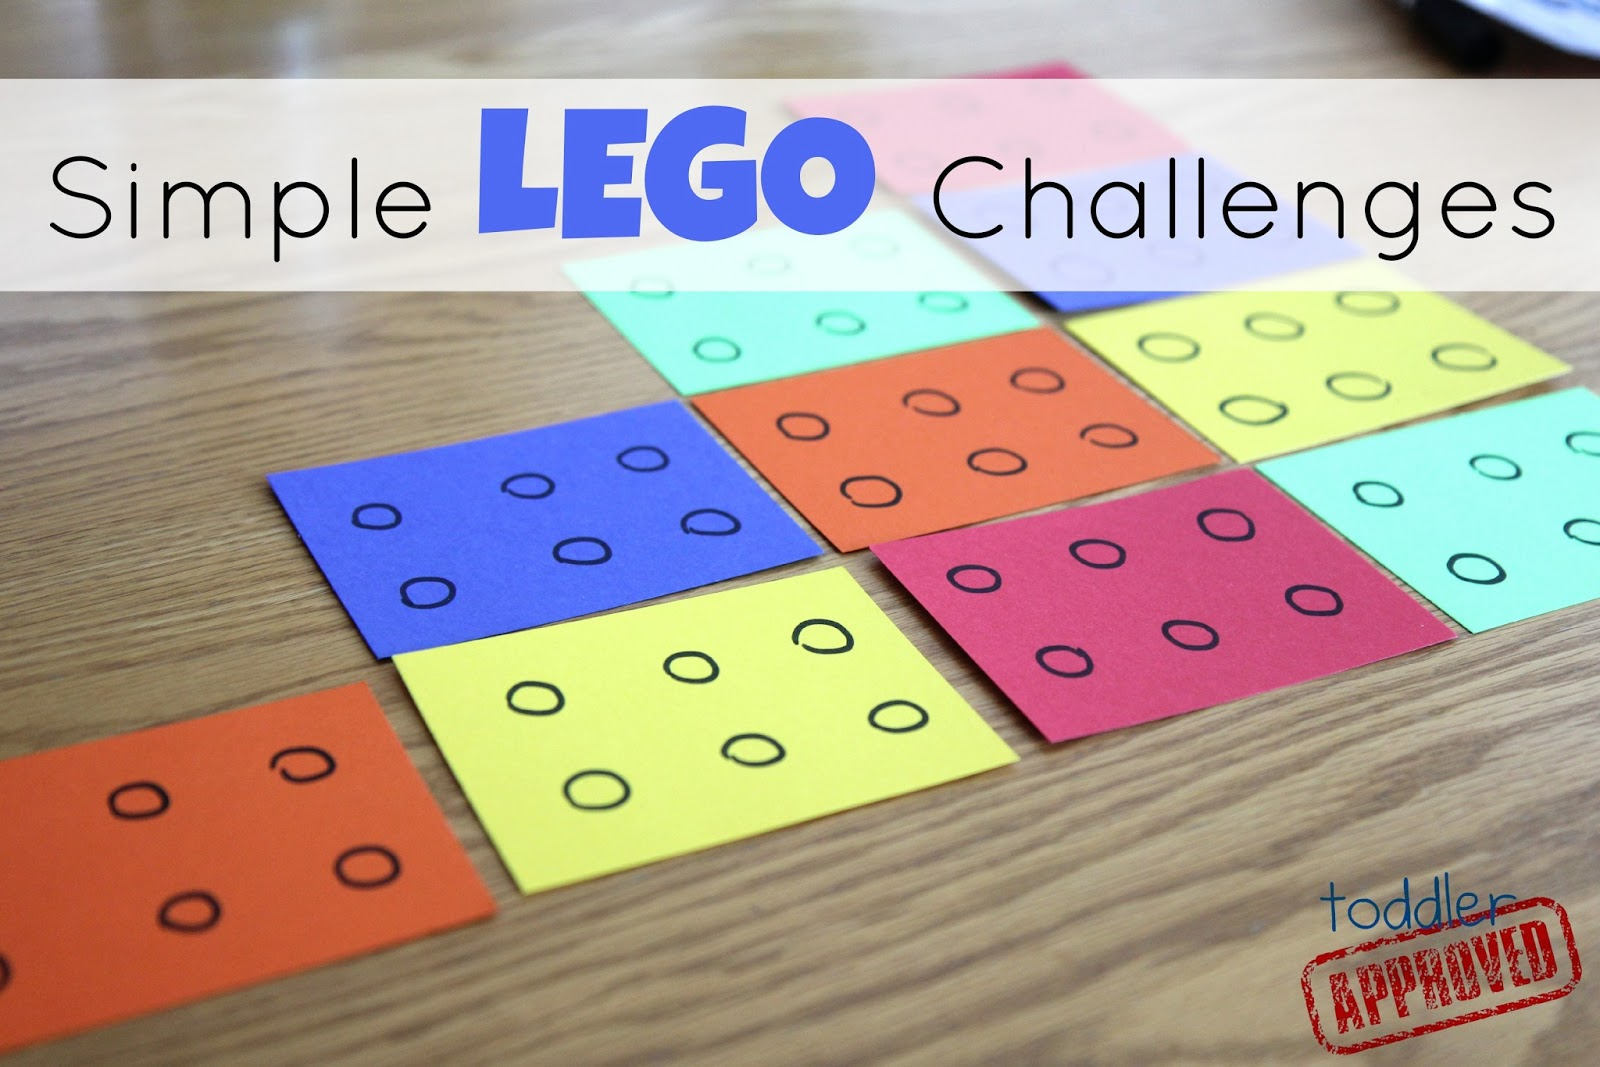 Toddler approved simple lego challenges for kids for Lego crafts for kids